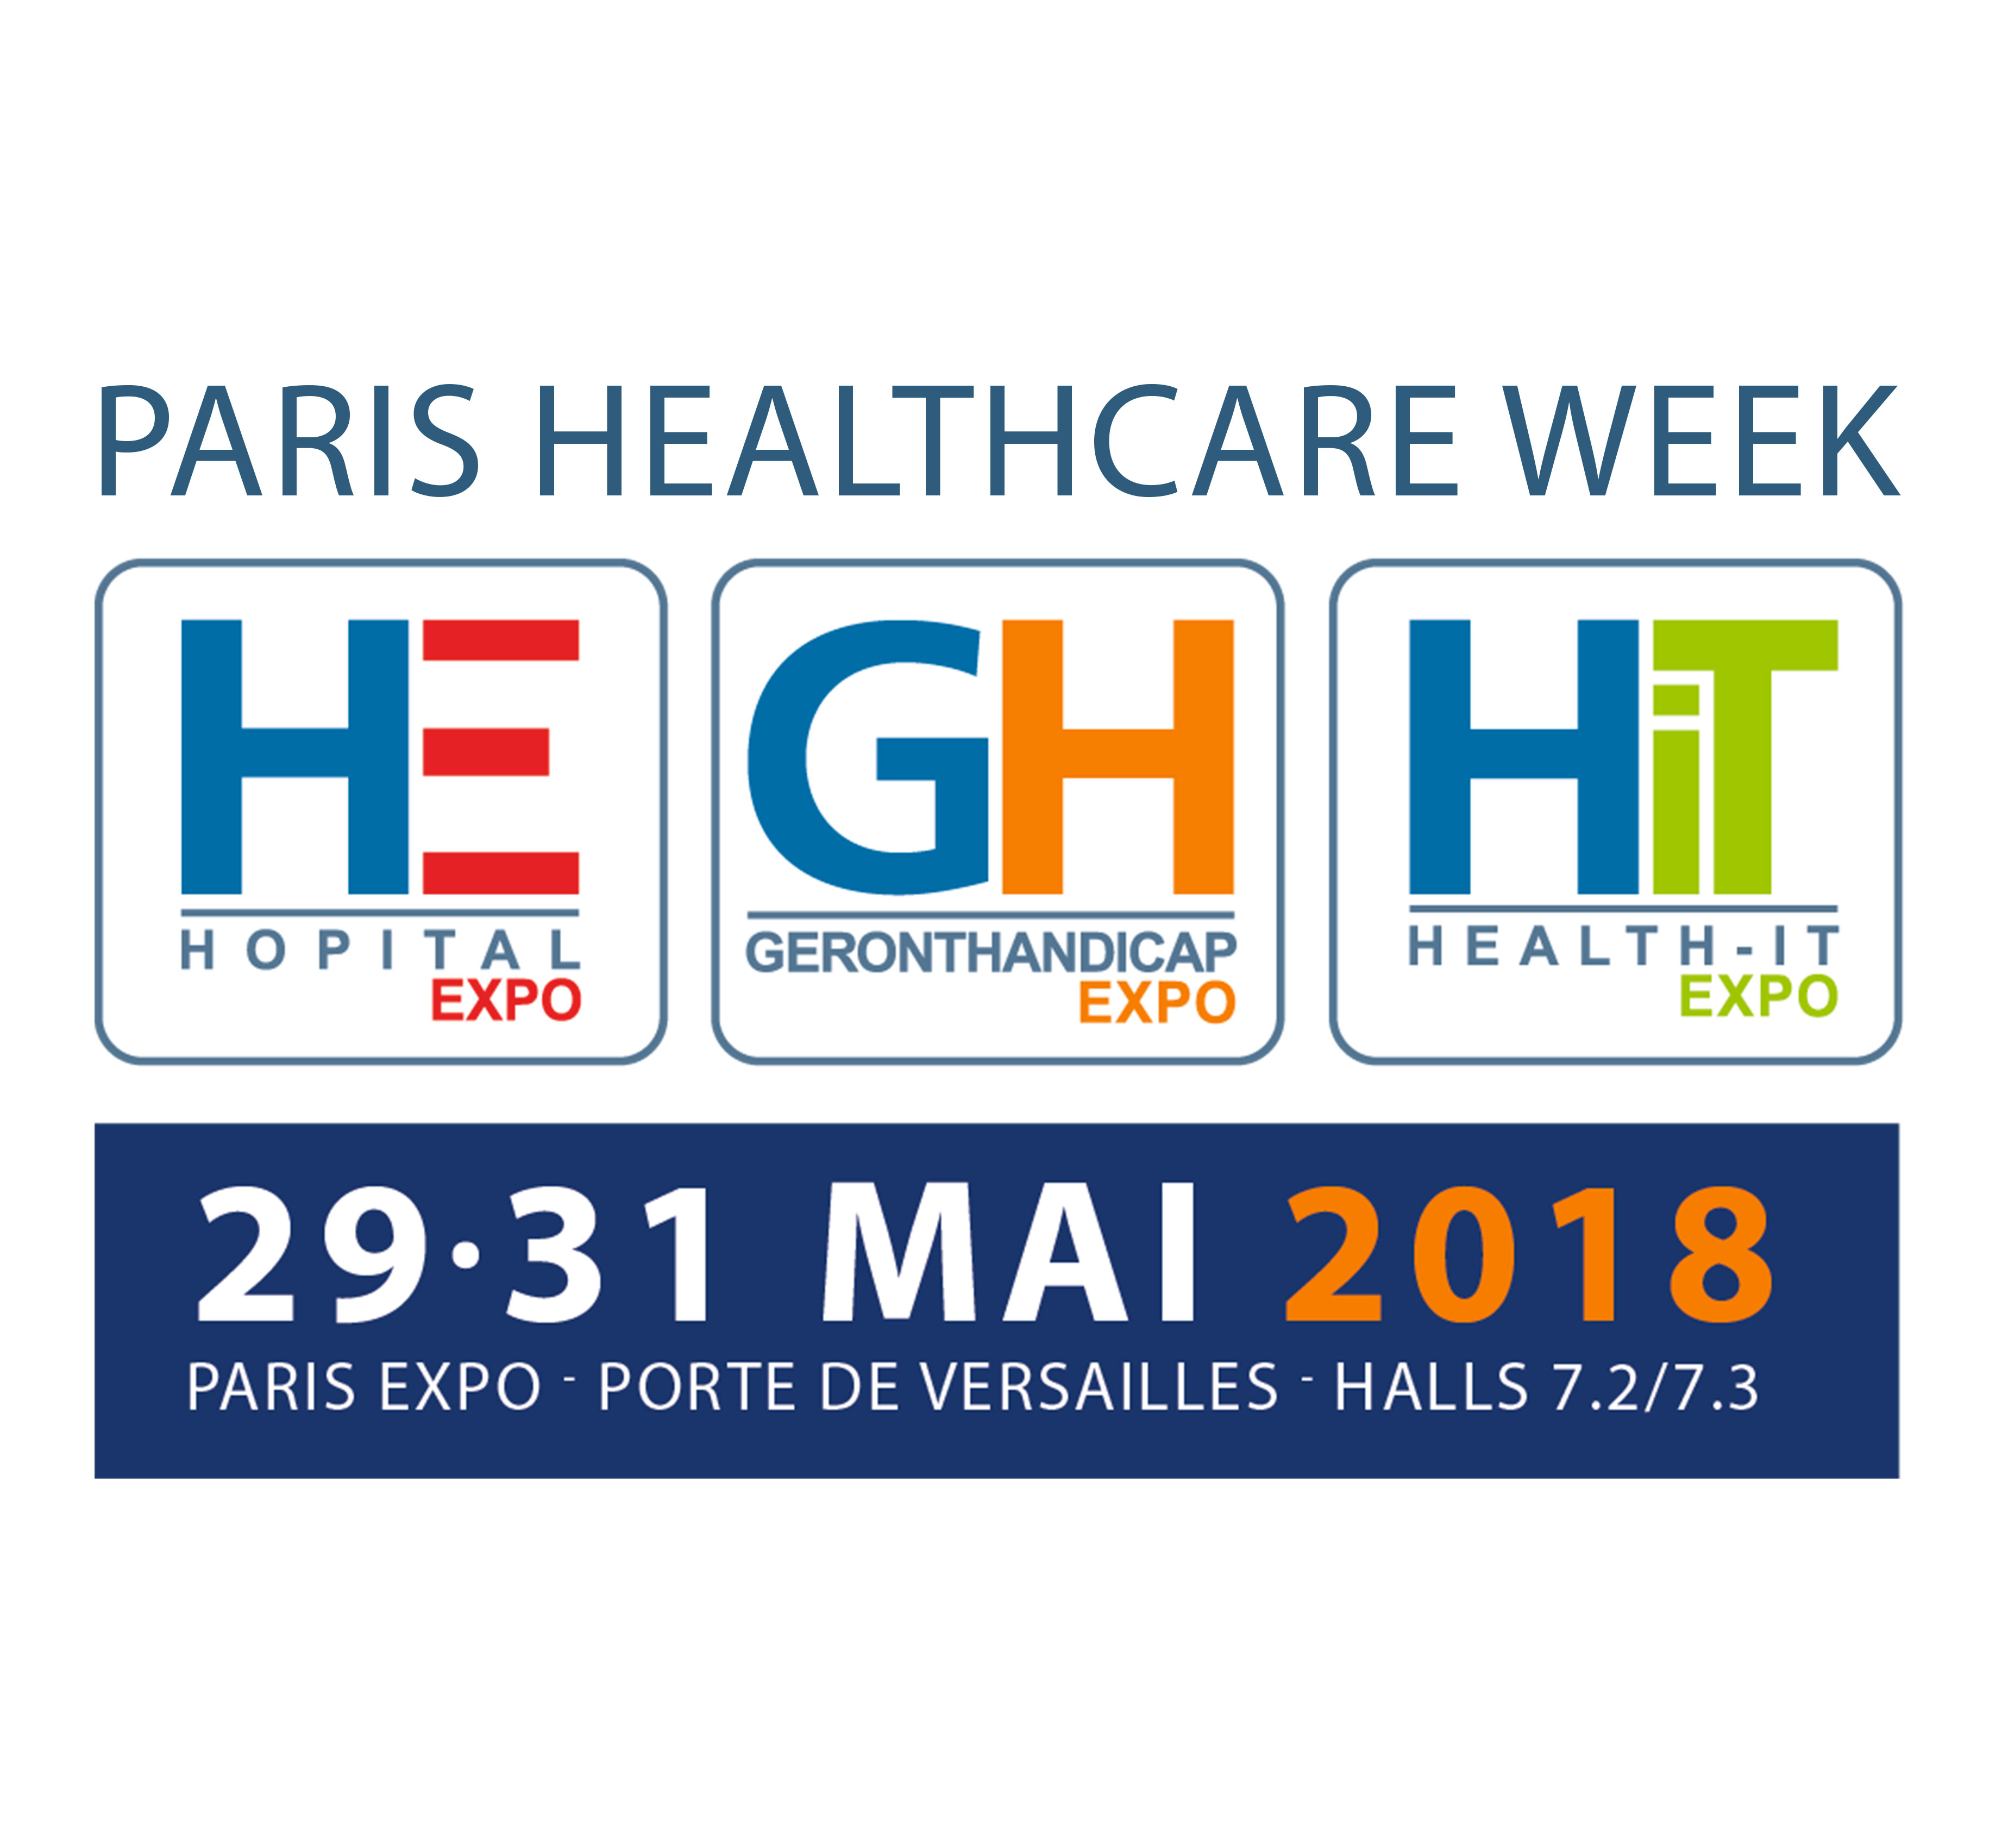 surgical light and medical pendant at Hôpital Expo Trade Fair